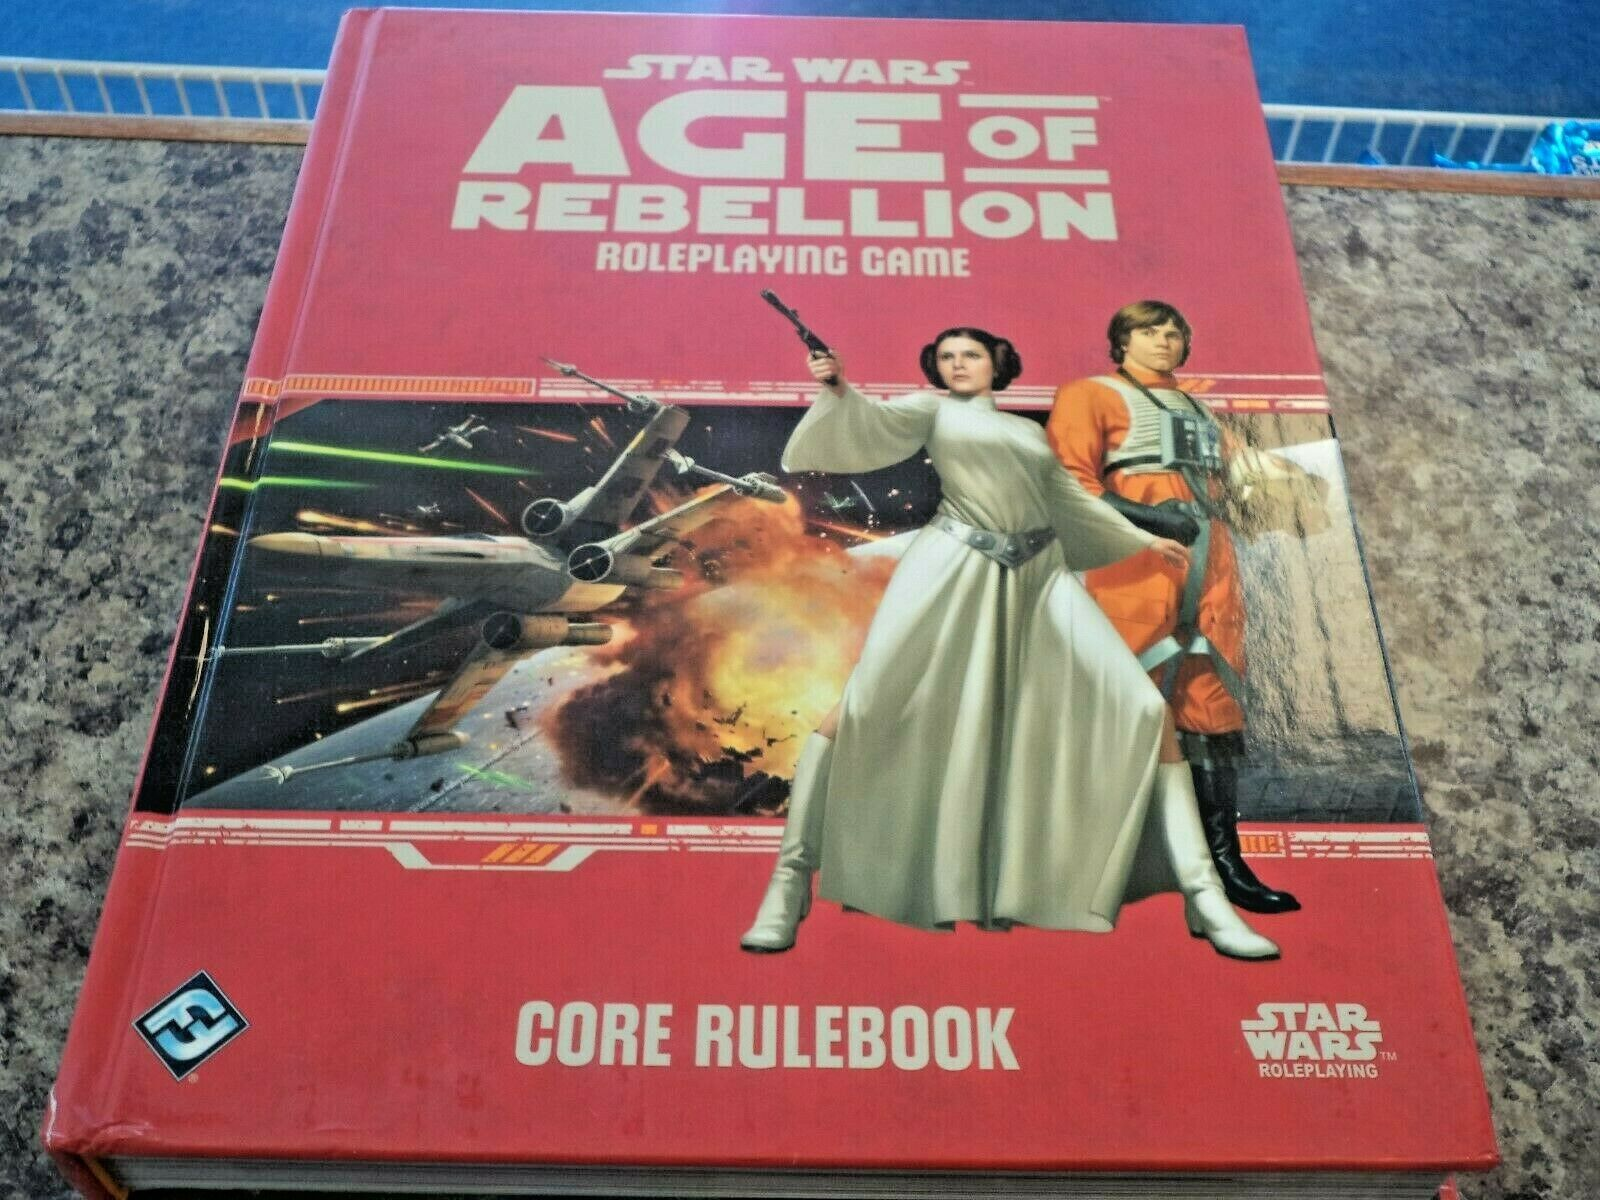 Star Wars Roleplaying Age of Rebellion Core Rulebook RPG Game Book New